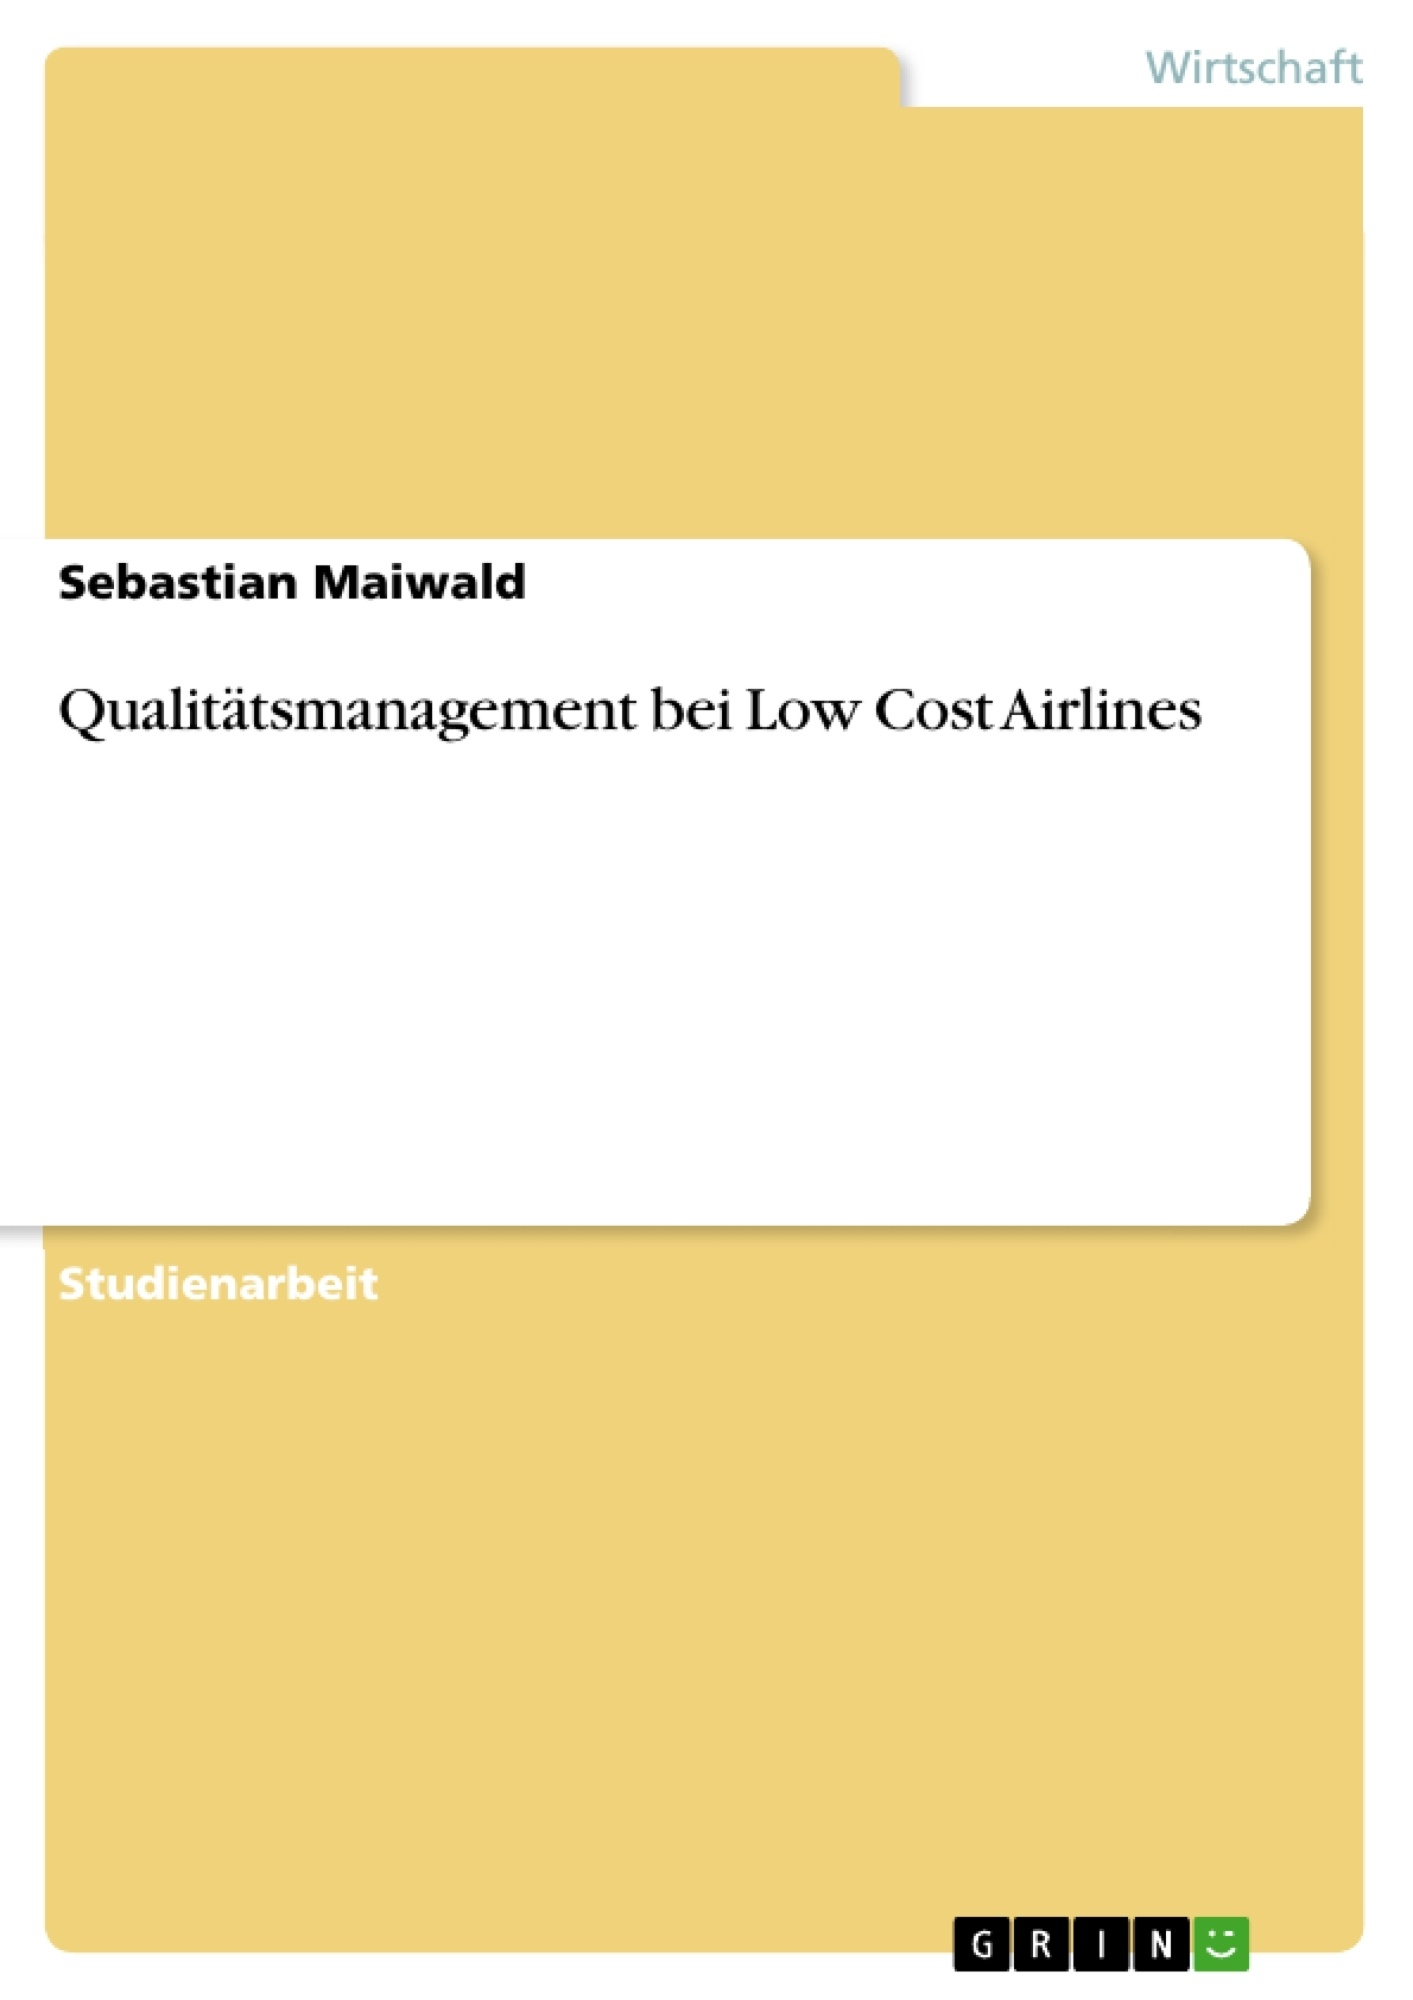 Titel: Qualitätsmanagement bei Low Cost Airlines